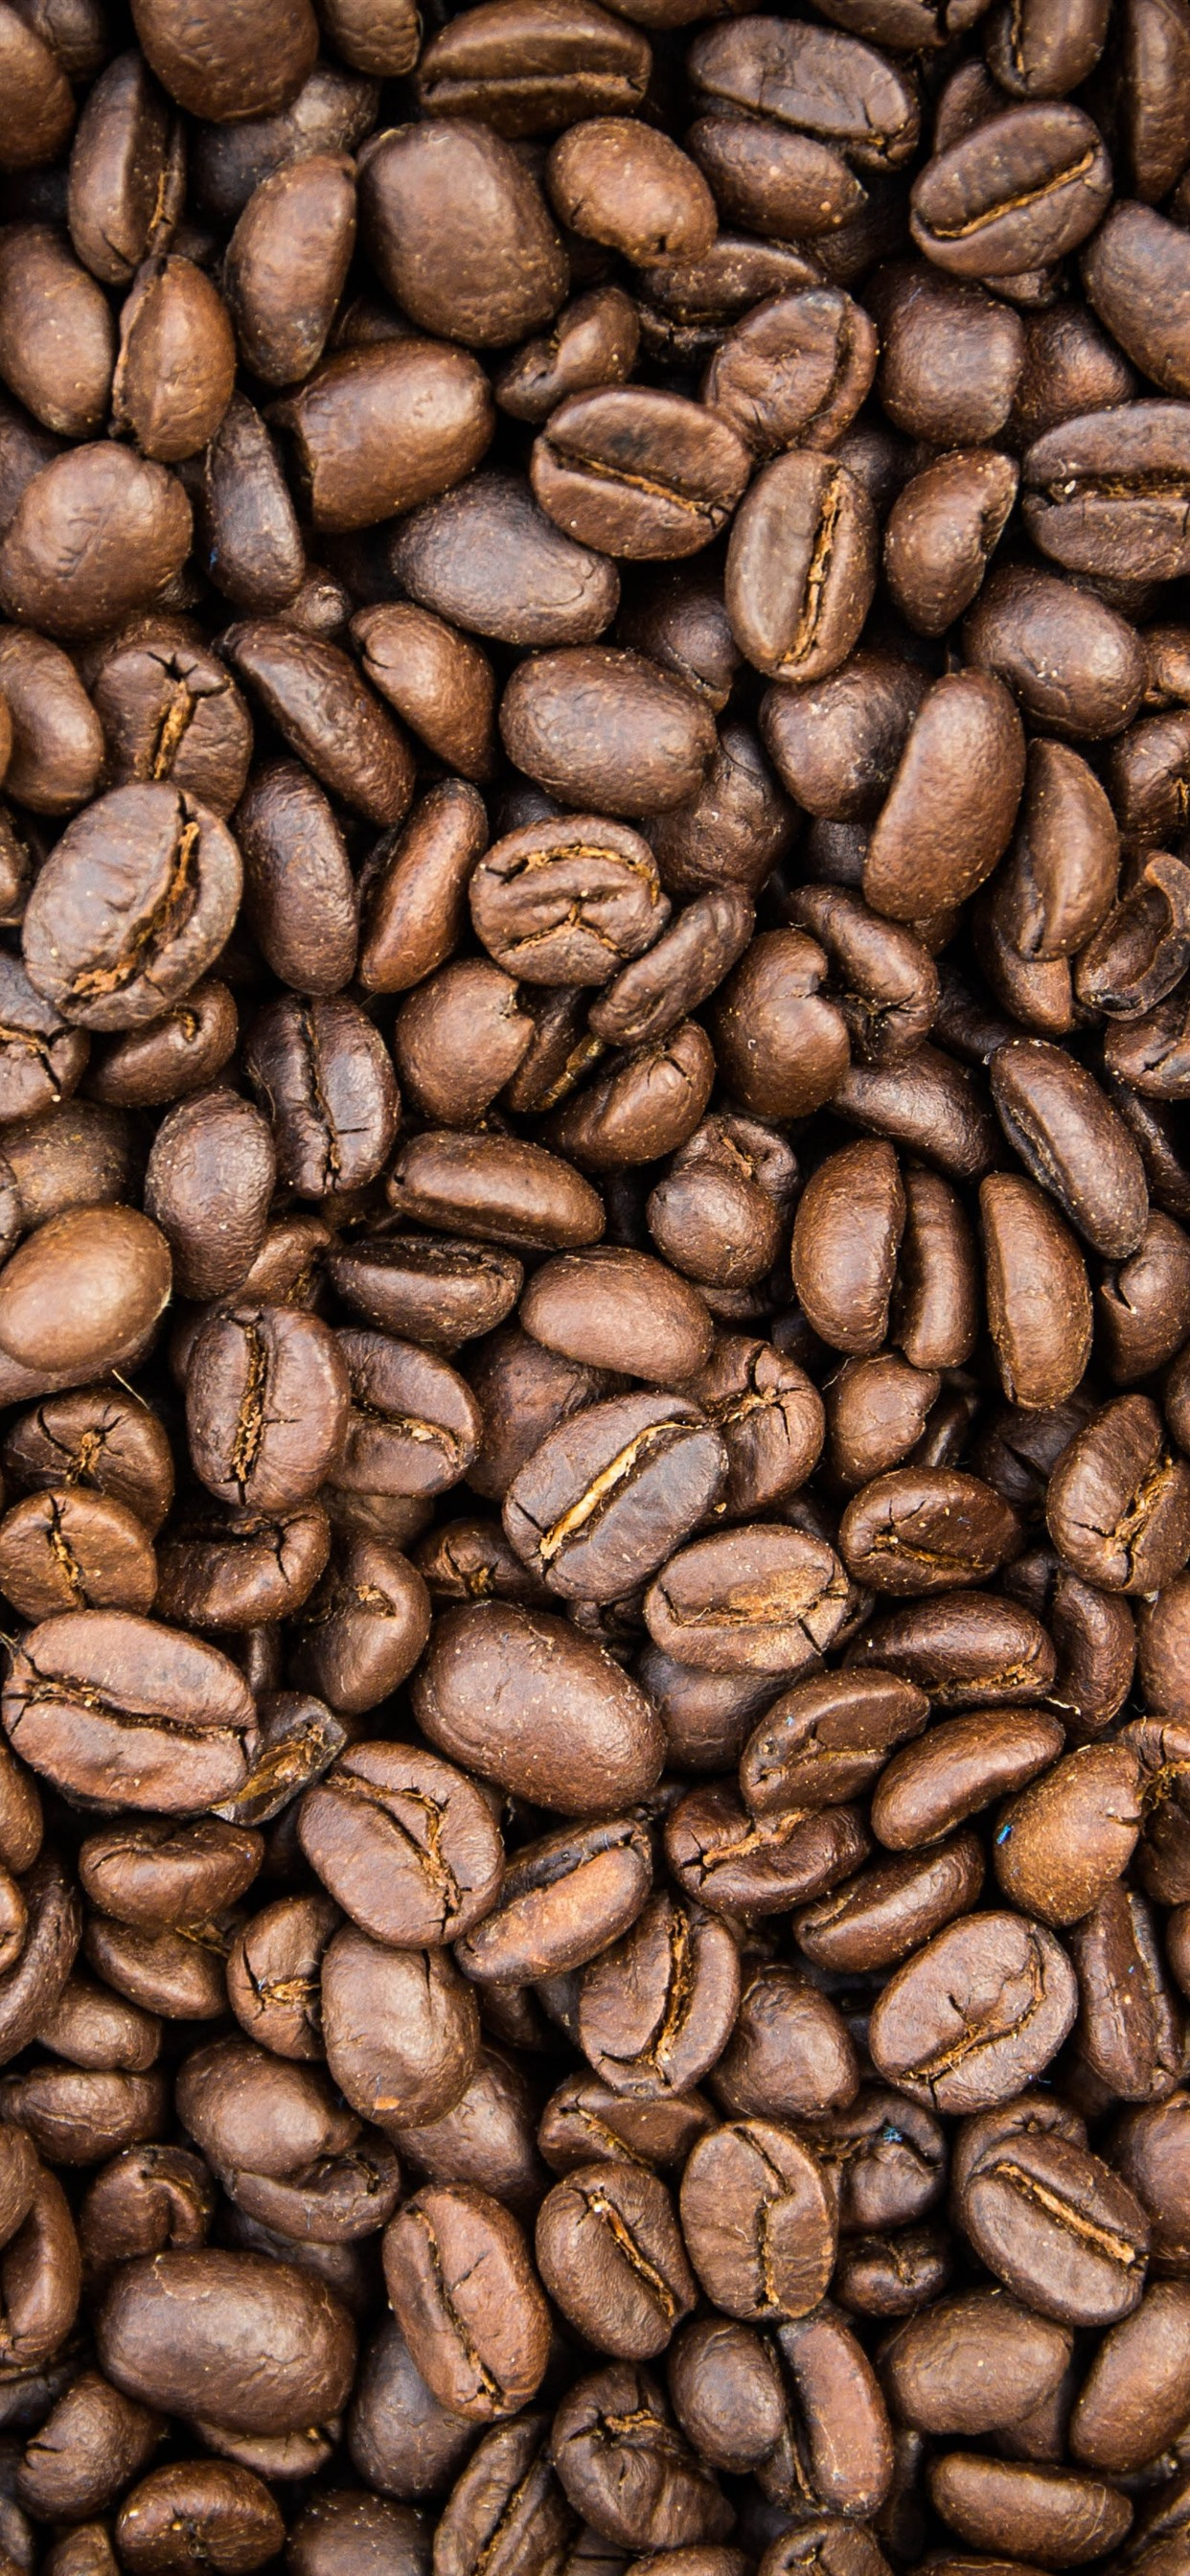 Lot Of Coffee Beans 1242x2688 Iphone Xs Max Wallpaper